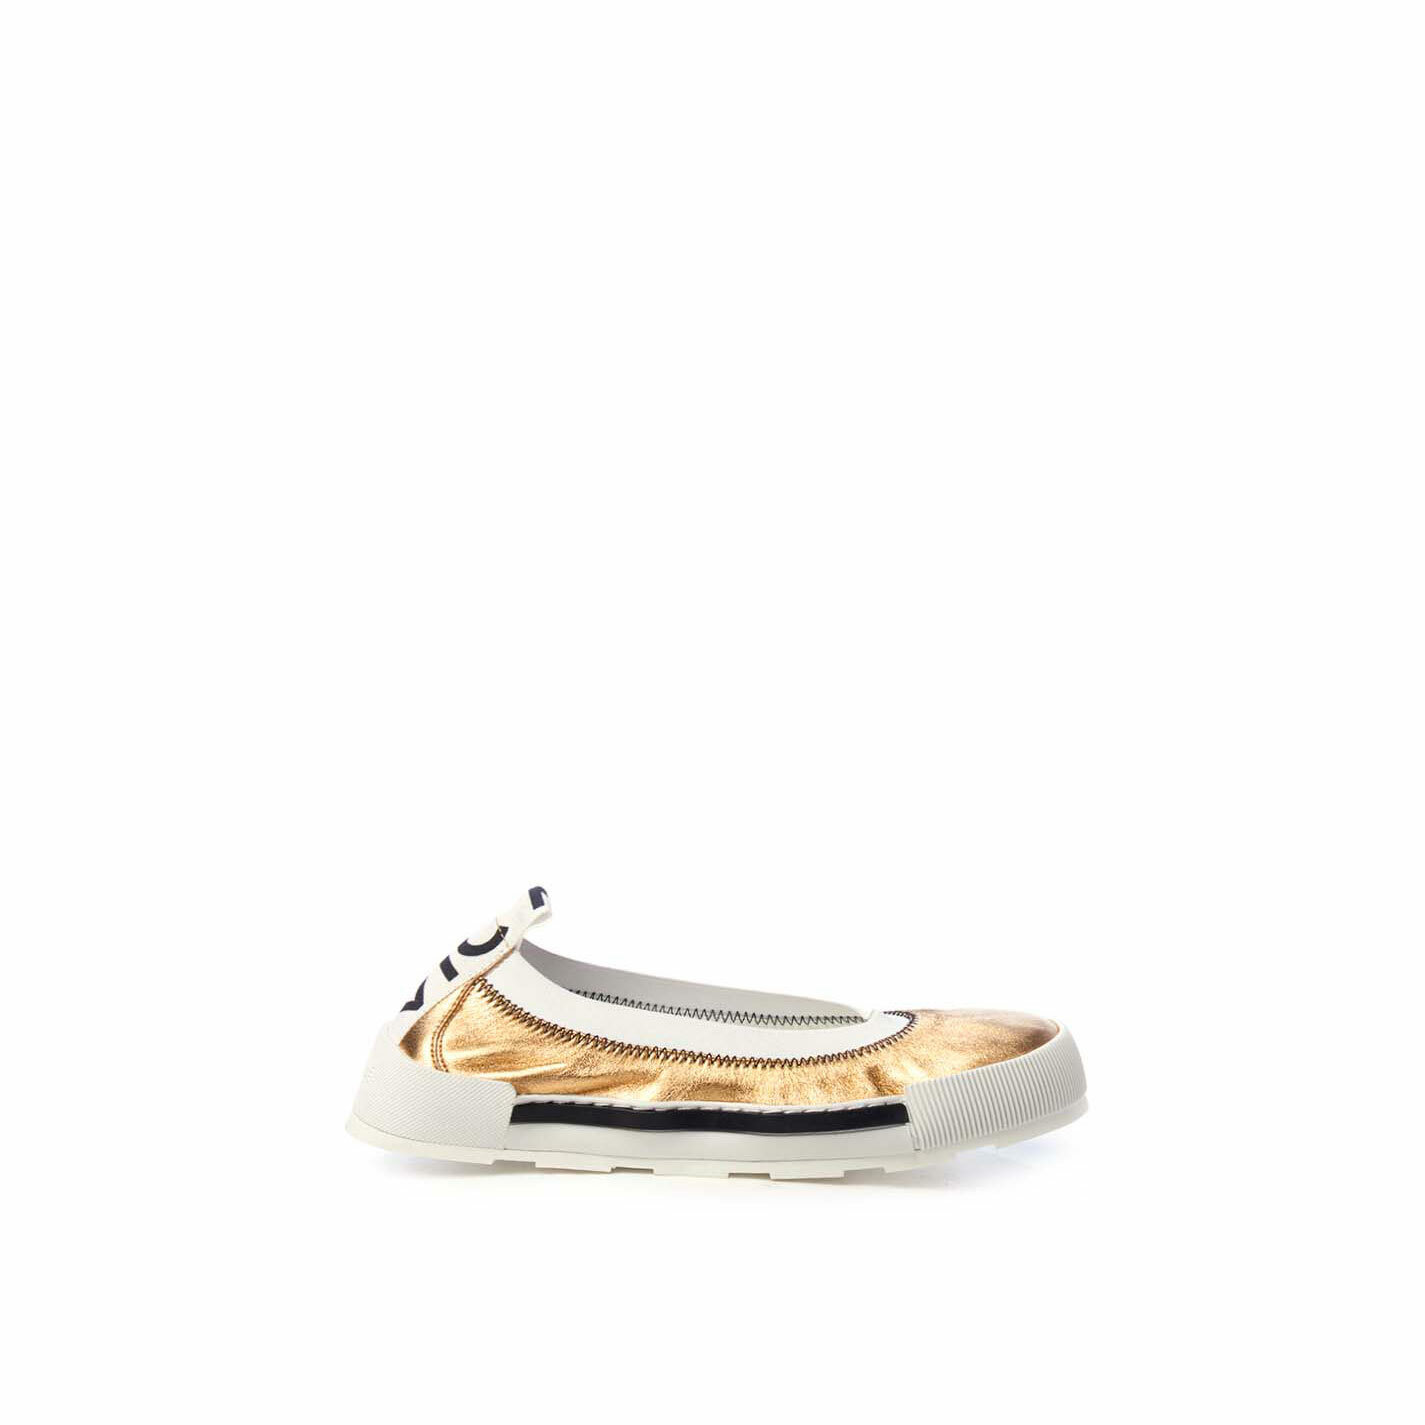 Sporty ballerina flats in soft, laminated golden nappa leather